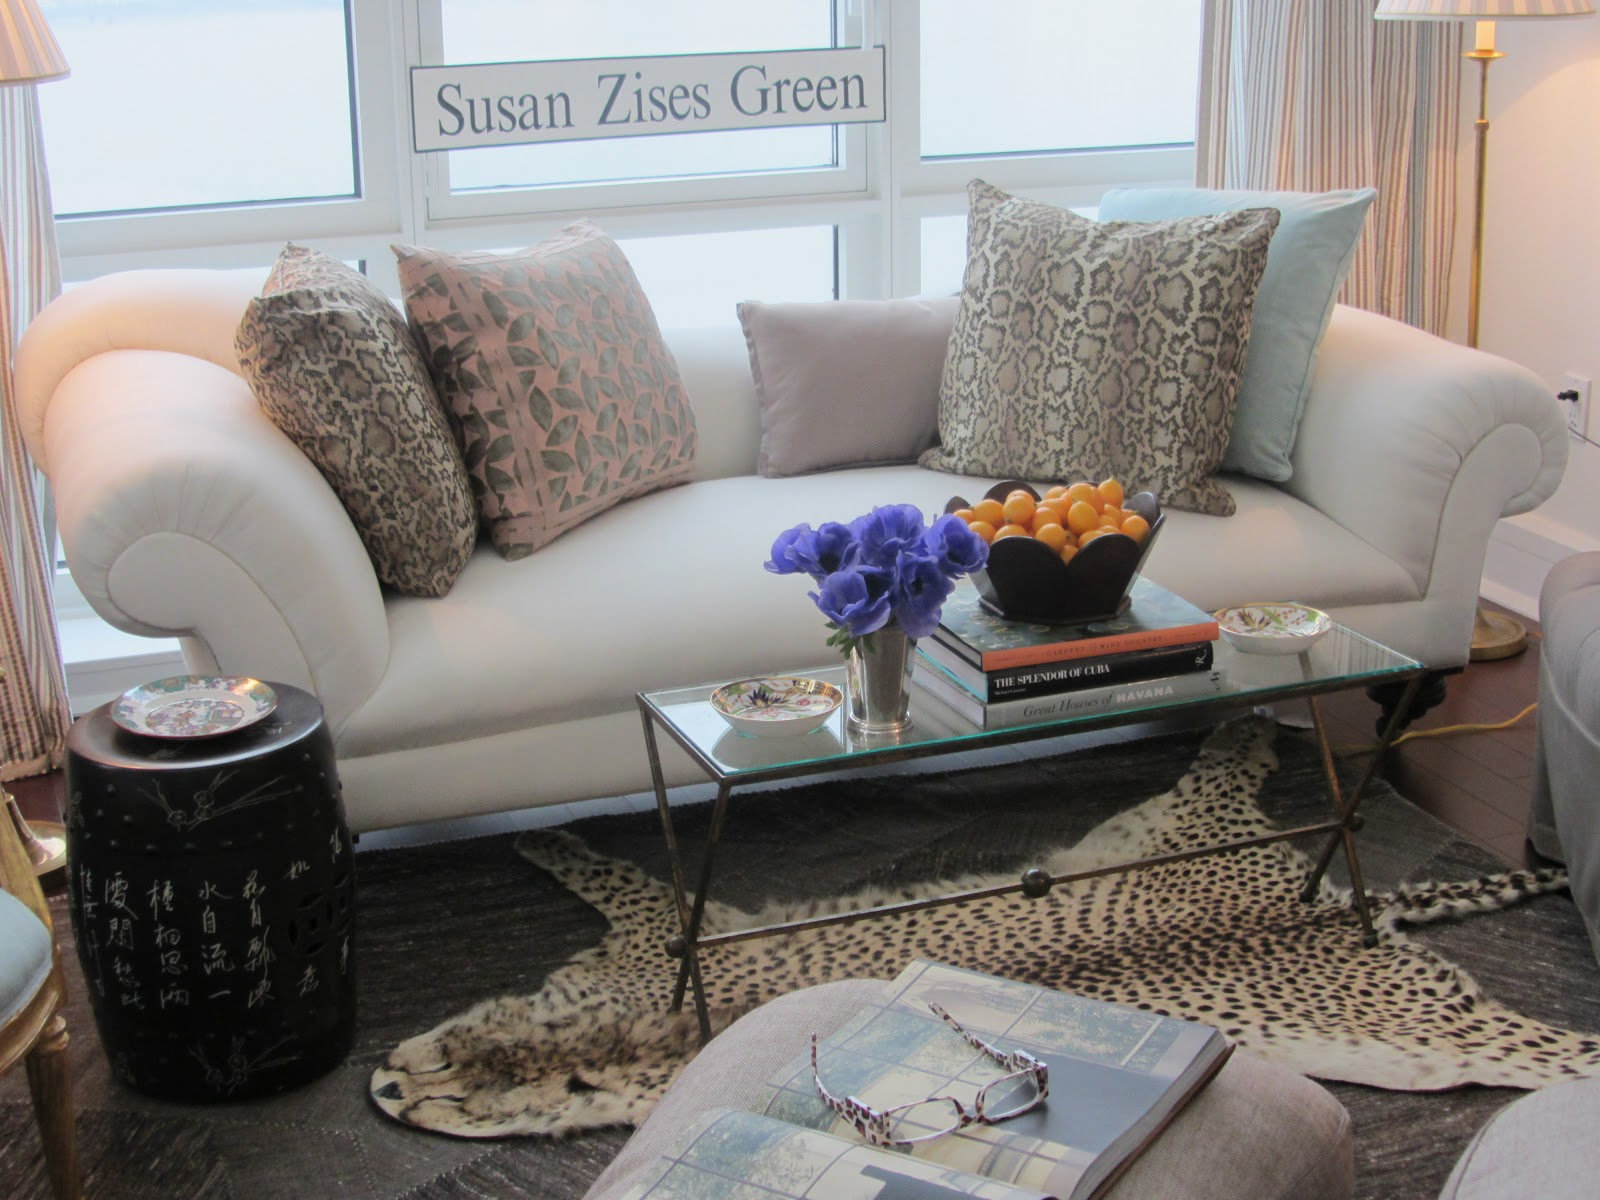 carrie s design musings kips bay show house 2012 part deux susan zises green had one of the largest spaces it was beautifully layered some of my favorite elements leopard jute hand blocked textiles